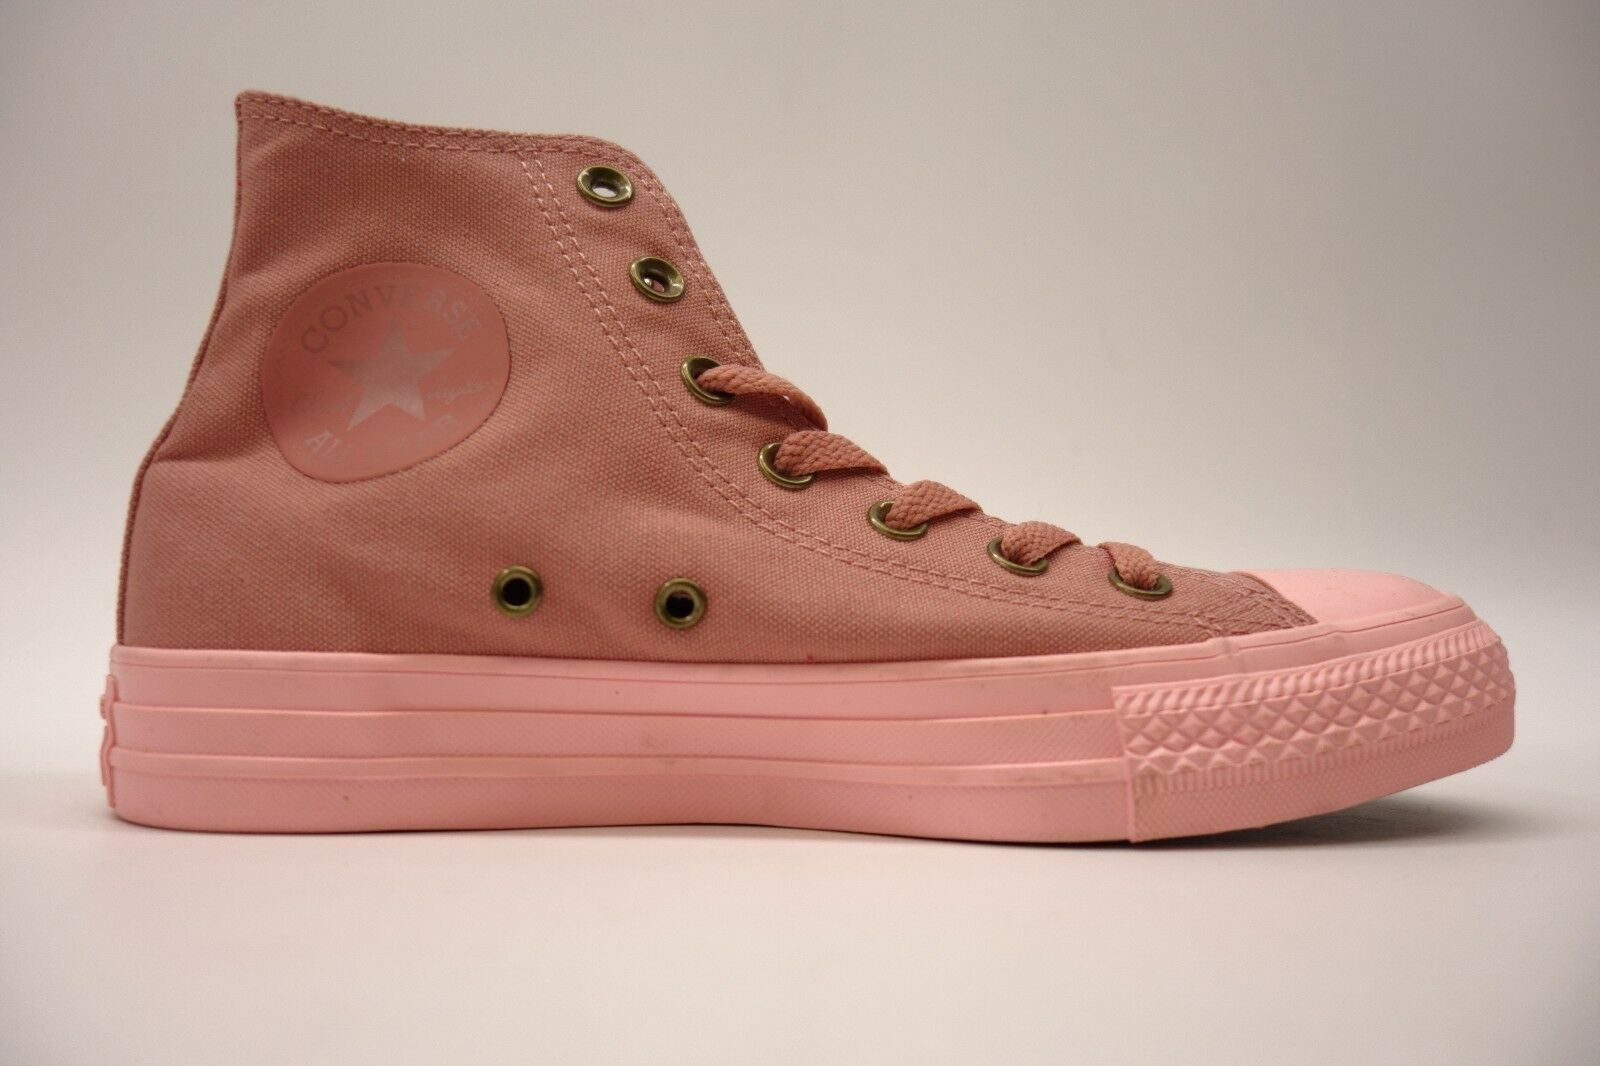 New Converse damen Bubblegum Rosa Chuck Taylor All Star High Top Canvas schuhe 7